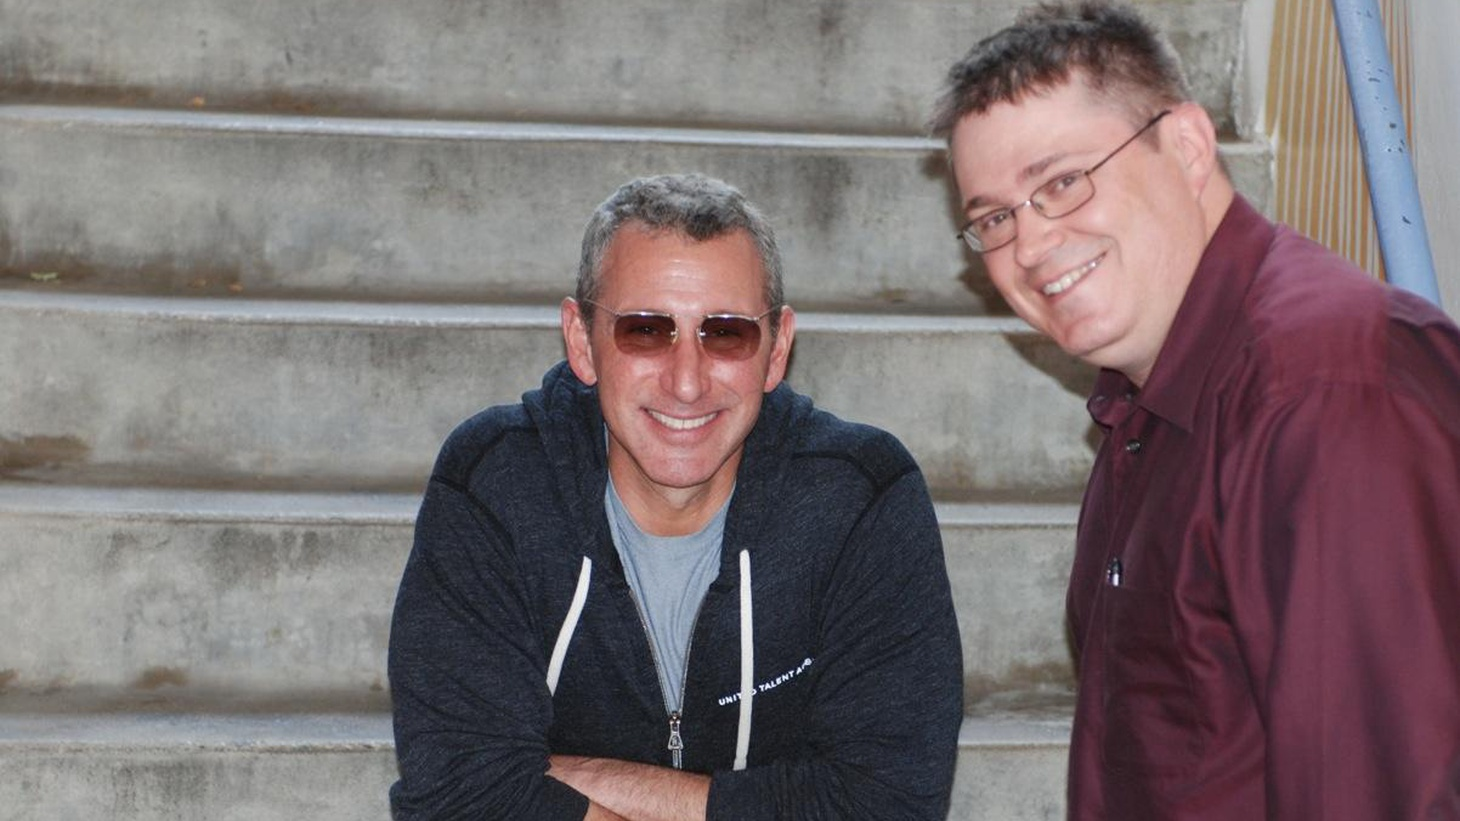 """Adam Shankman rose through the ranks as a choreographer before stepping behind the camera to direct high profile mainstream feature films. He shares five songs that mark milestones in his life as part of his Guest DJ set, including his first big concert, his move to New York to attend Juilliard, as well as the track that marks his """"coming out""""."""